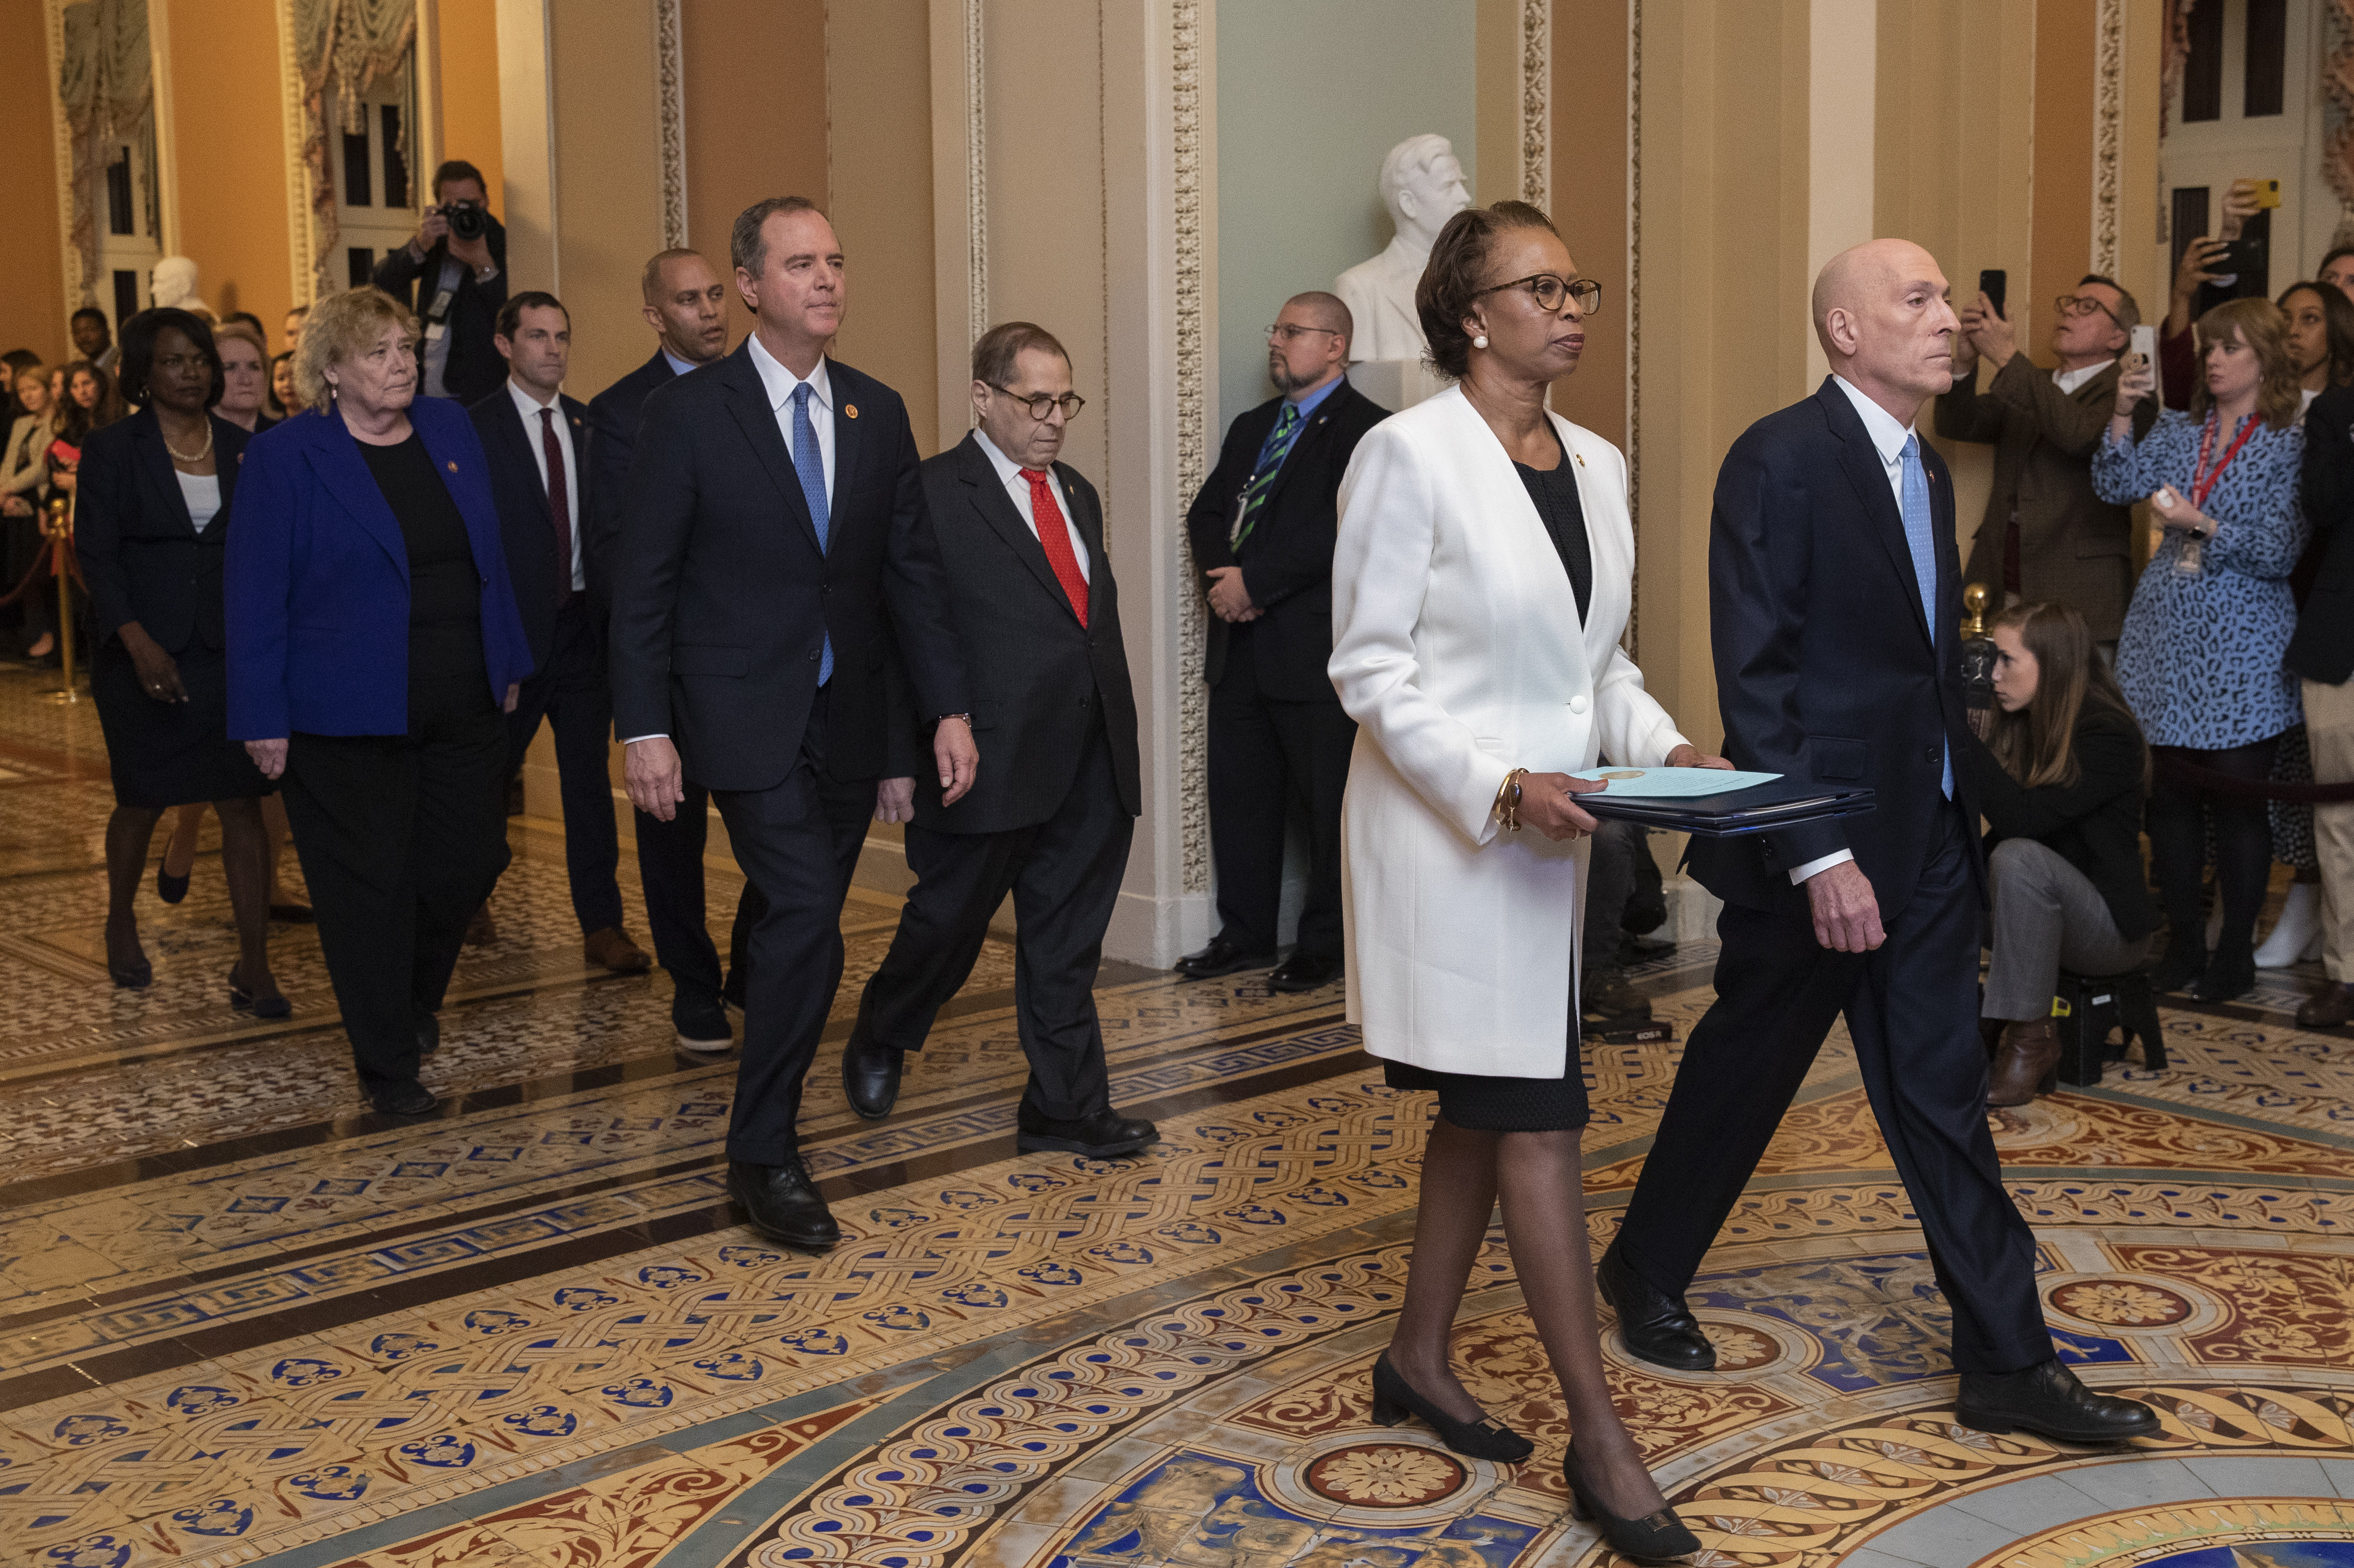 House Sergeant at Arms Paul Irving and Clerk of the House Cheryl Johnson carry the articles of impeachment against President Donald Trump to Secretary of the Senate Julie Adams on Capitol Hill in Washington, Wednesday, Jan. 15, 2020. Following are impeachment managers, House Judiciary Committee Chairman, Rep. Jerrold Nadler, D-N.Y., House Intelligence Committee Chairman Adam Schiff, D-Calif., Rep. Hakeem Jeffries, D-N.Y., Rep. Sylvia Garcia, D-Texas, Rep. Val Demings, D-Fla., Rep. Zoe Lofgren, D-Calif., and Rep. Jason Crow, D-Colo. (AP Photo/Manuel Balce Ceneta) , Wednesday, Jan. 15, 2020.